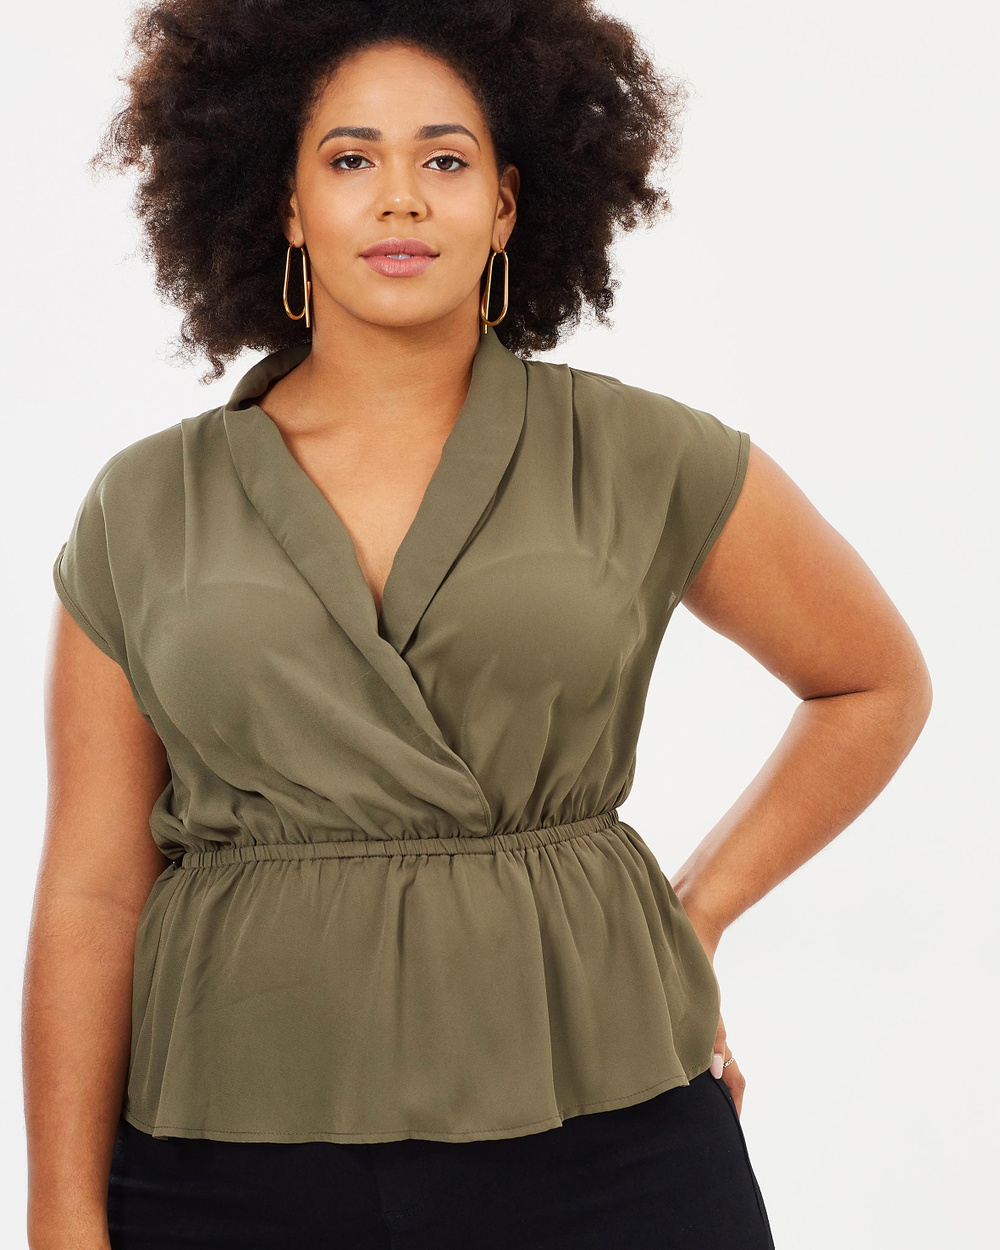 Atmos & Here Curvy ICONIC EXCLUSIVE Andrea Collar Top Tops Khaki ICONIC EXCLUSIVE Andrea Collar Top